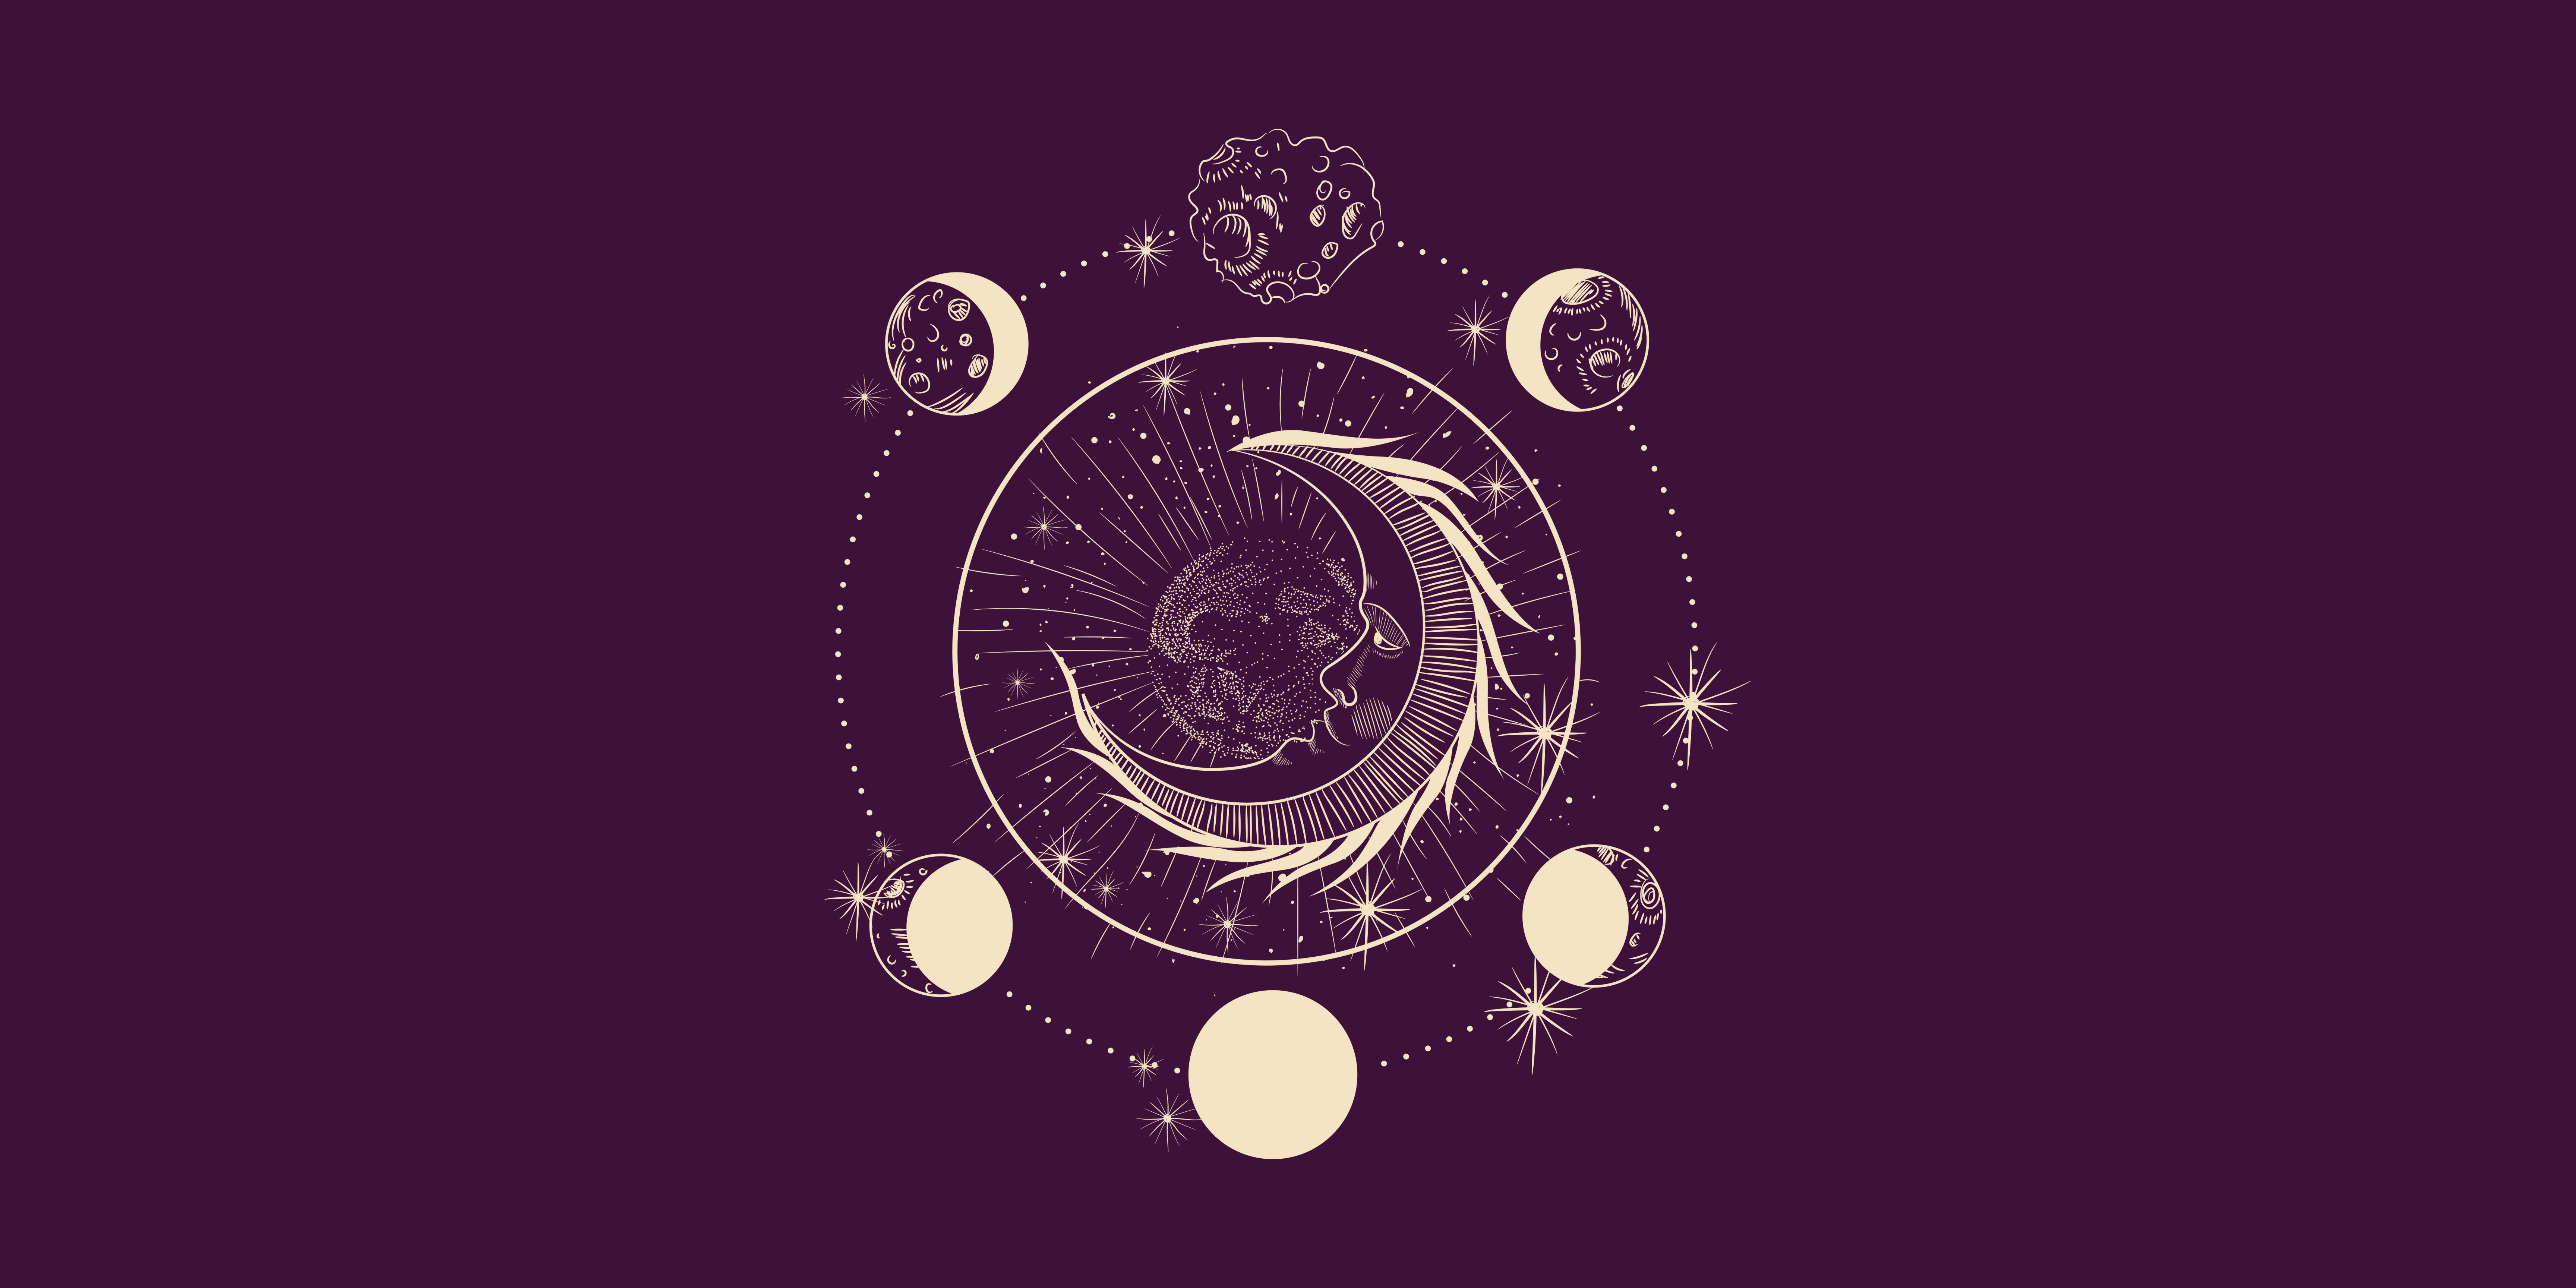 An artistic drawing of the moon cycles. This image shows a crescent moon in the middle and the moon phases as they go from new moon to full moon and back around again.